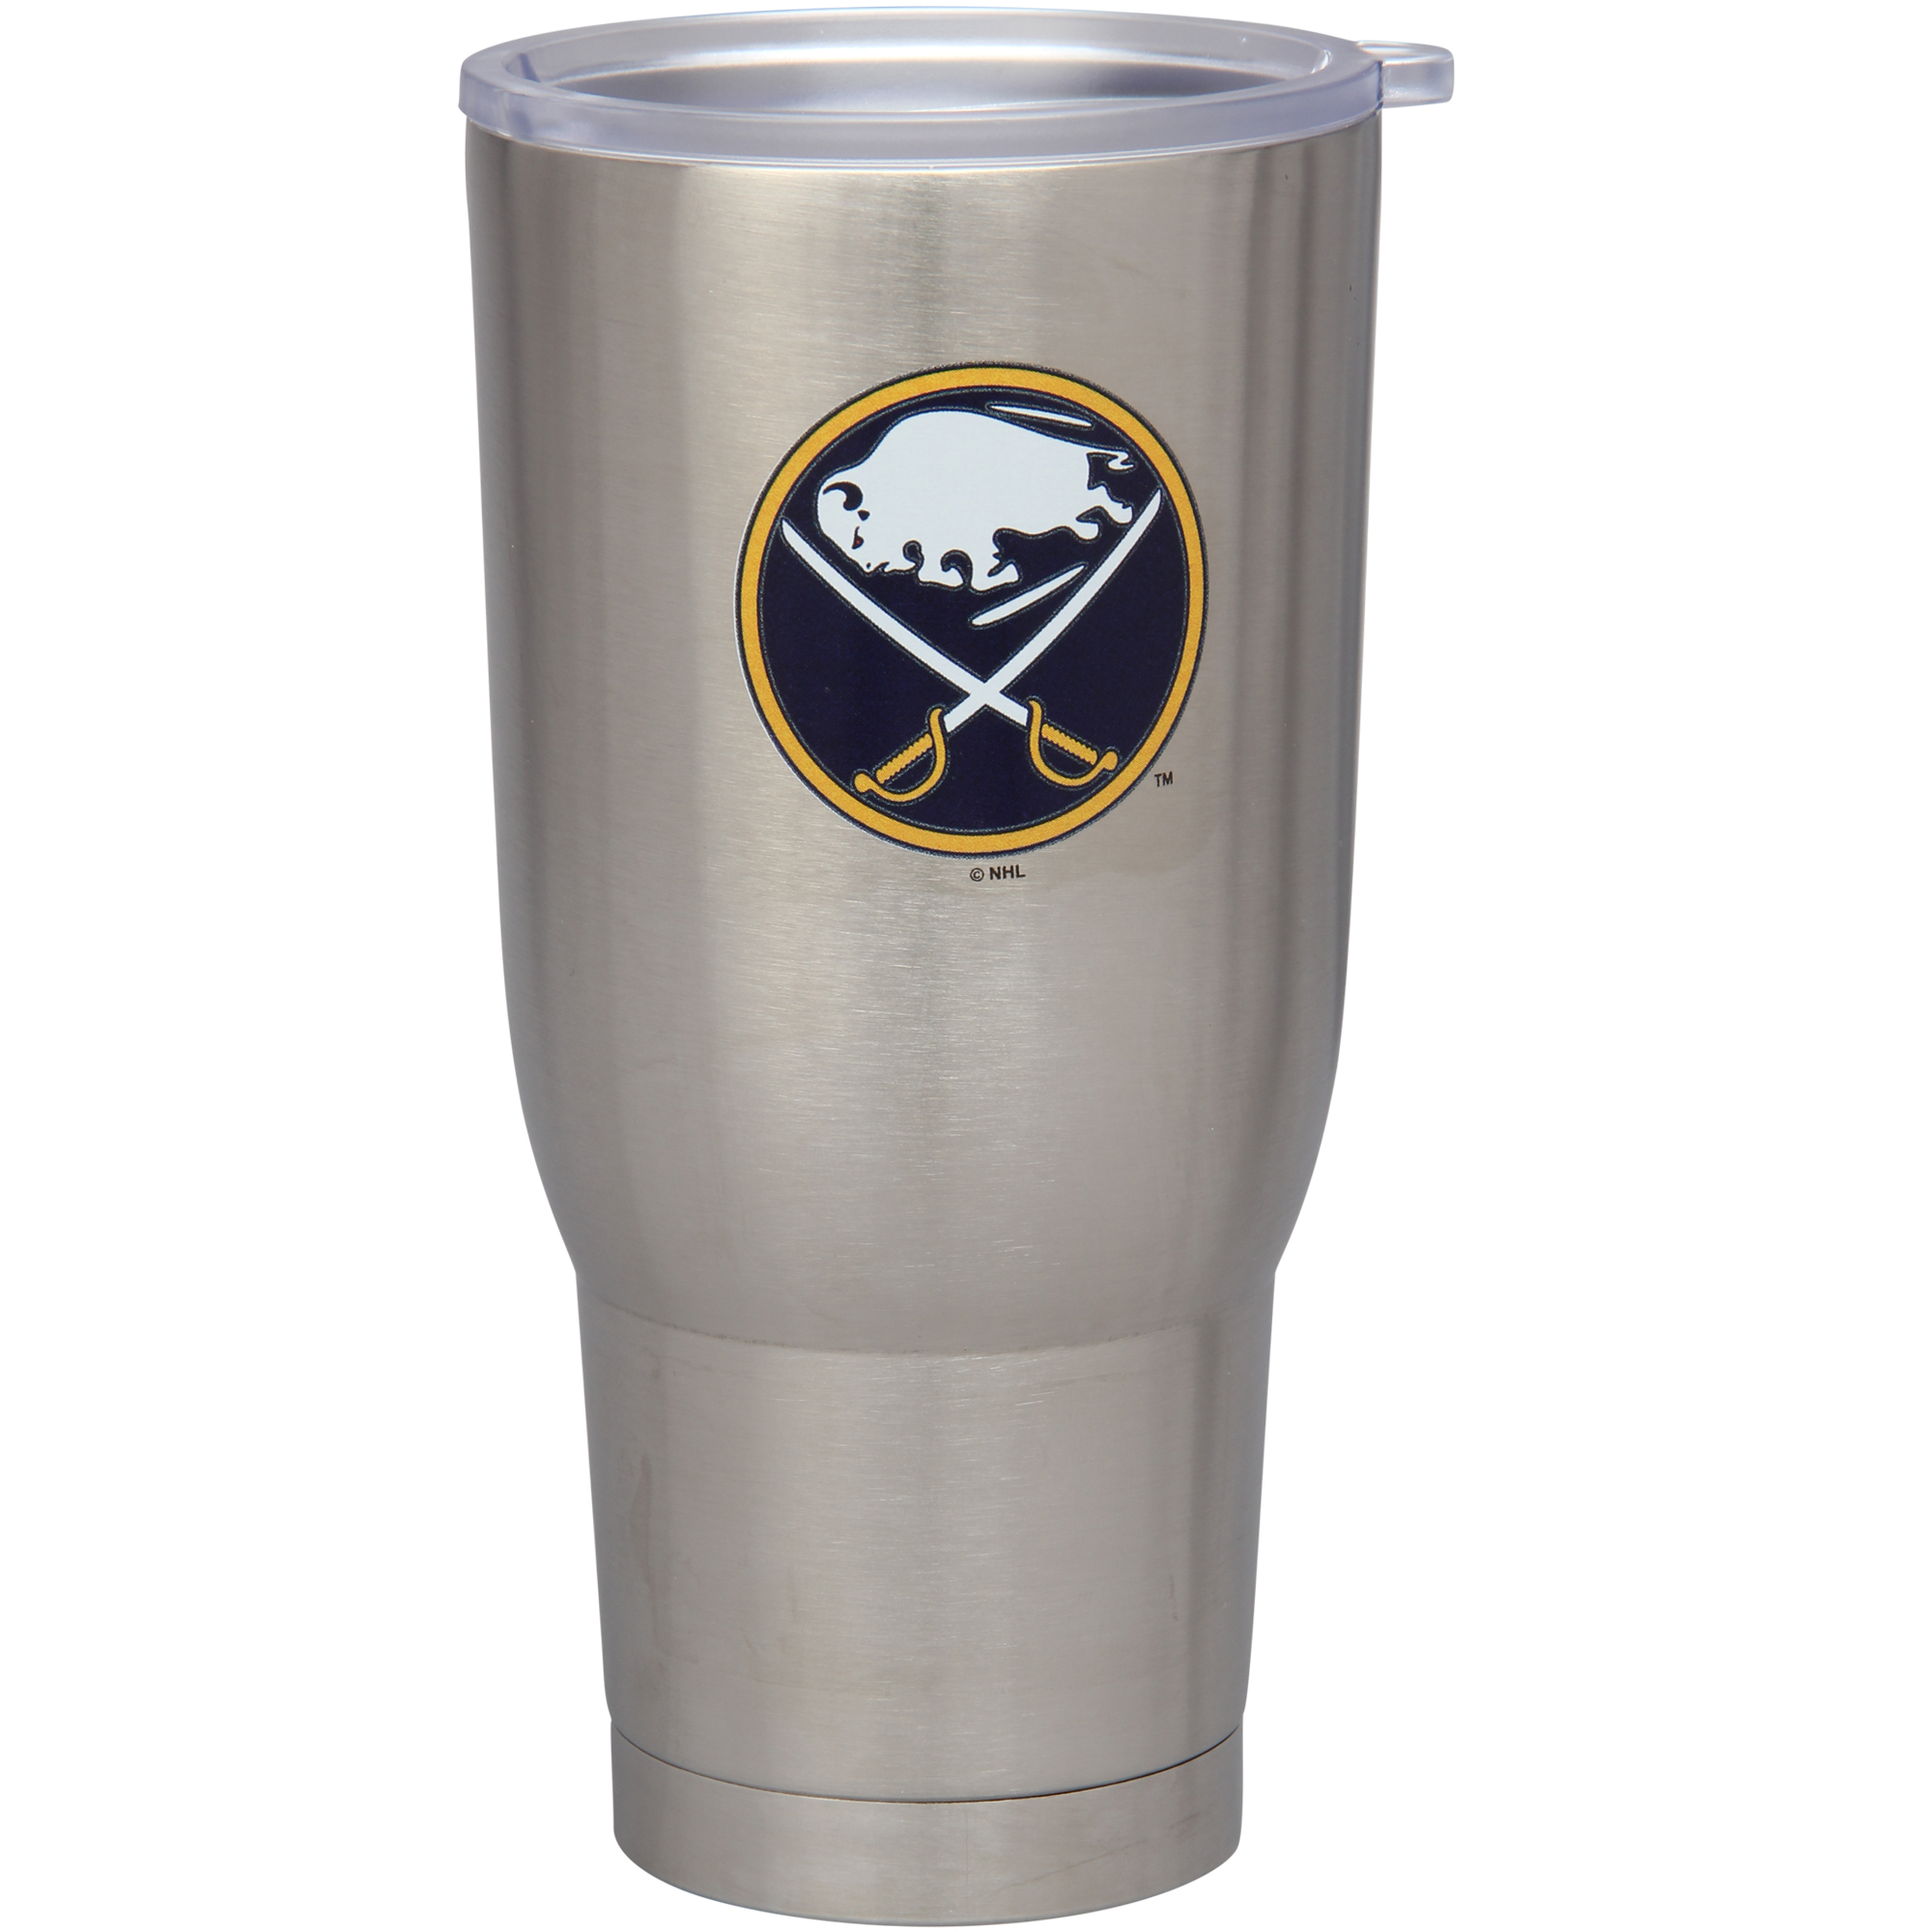 Buffalo Sabres 32oz. Stainless Steel Keeper Tumbler - No Size